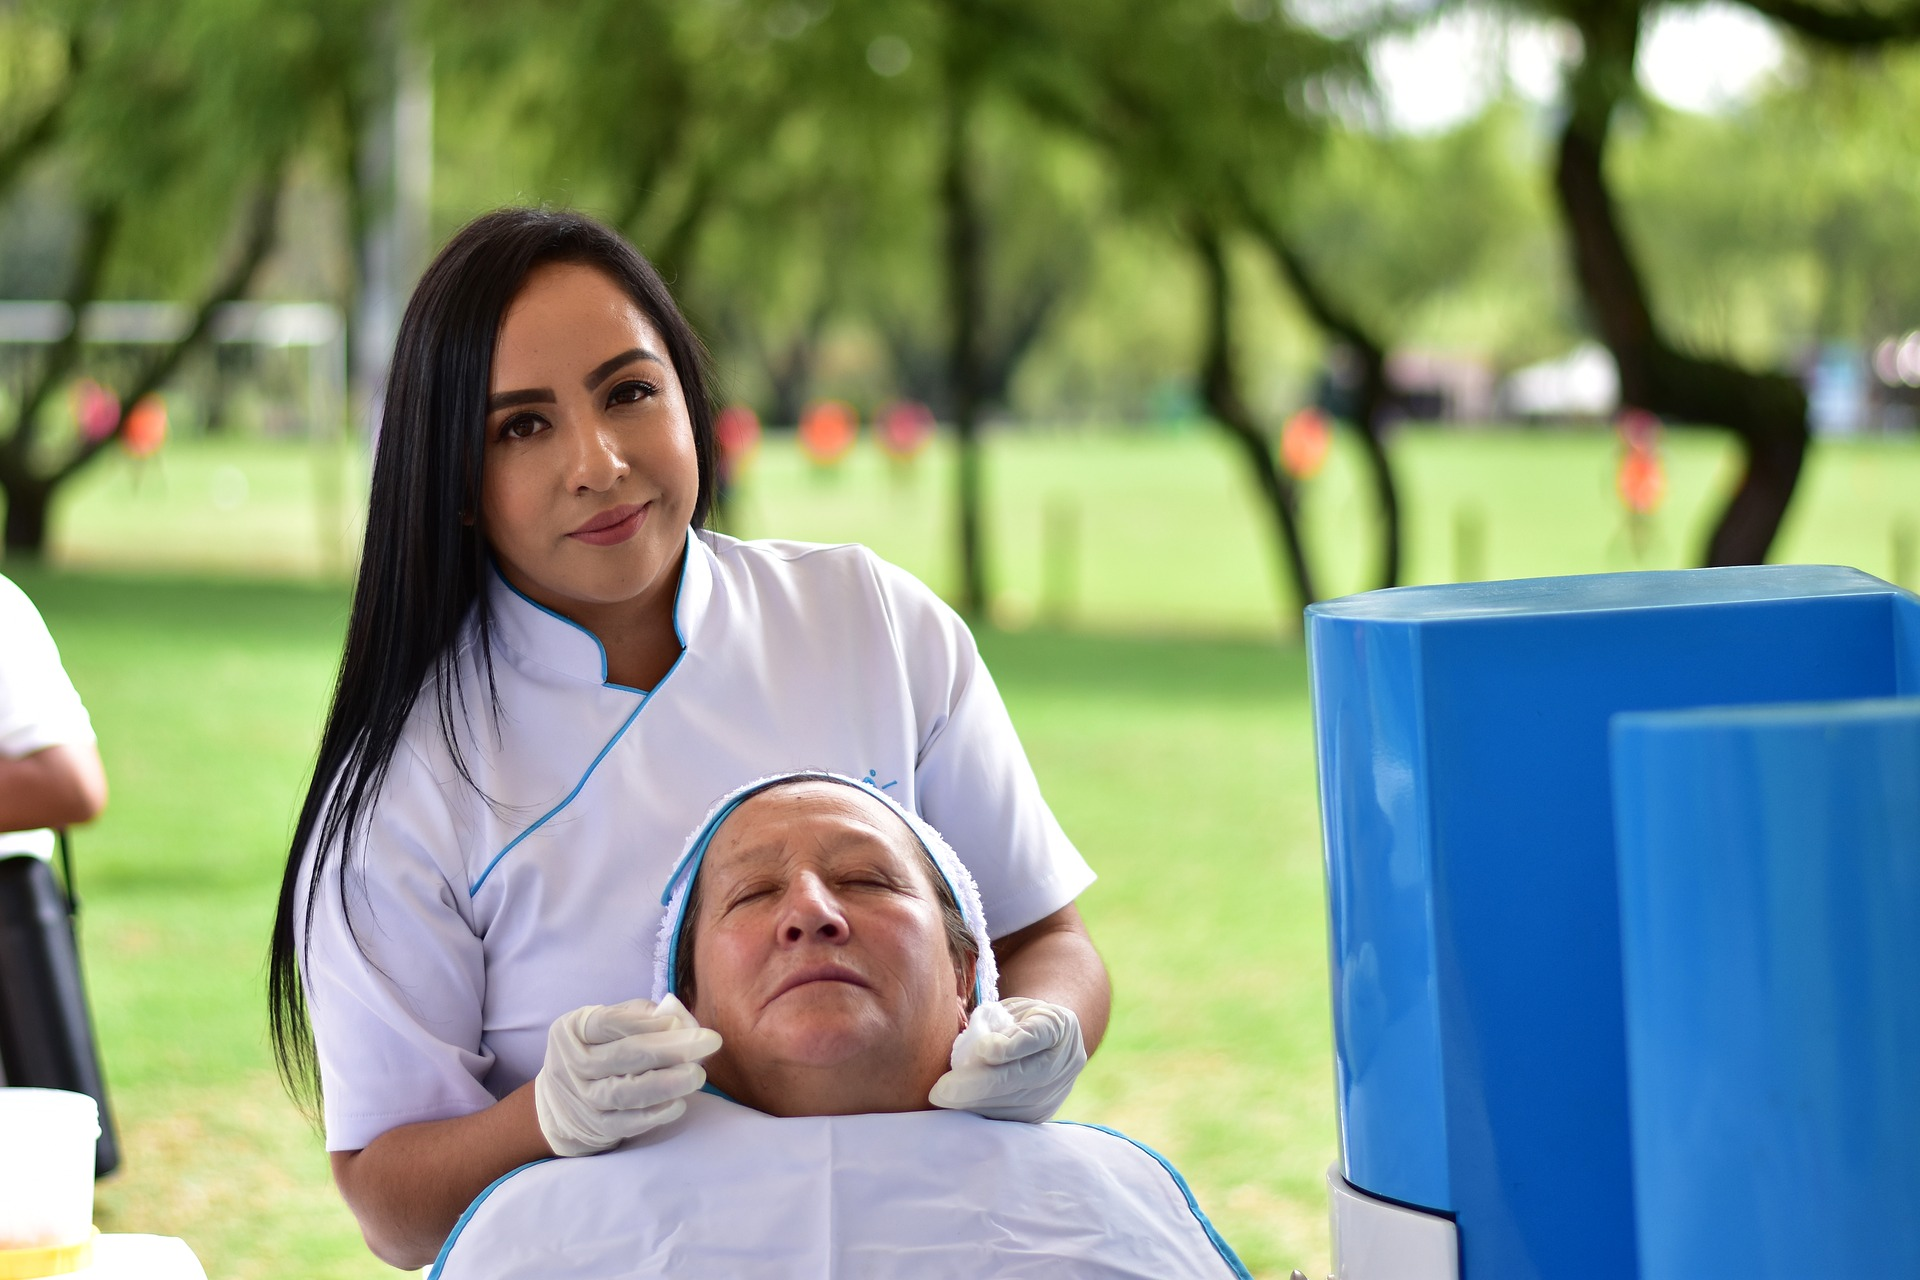 Woman doing facial cleaning on another woman